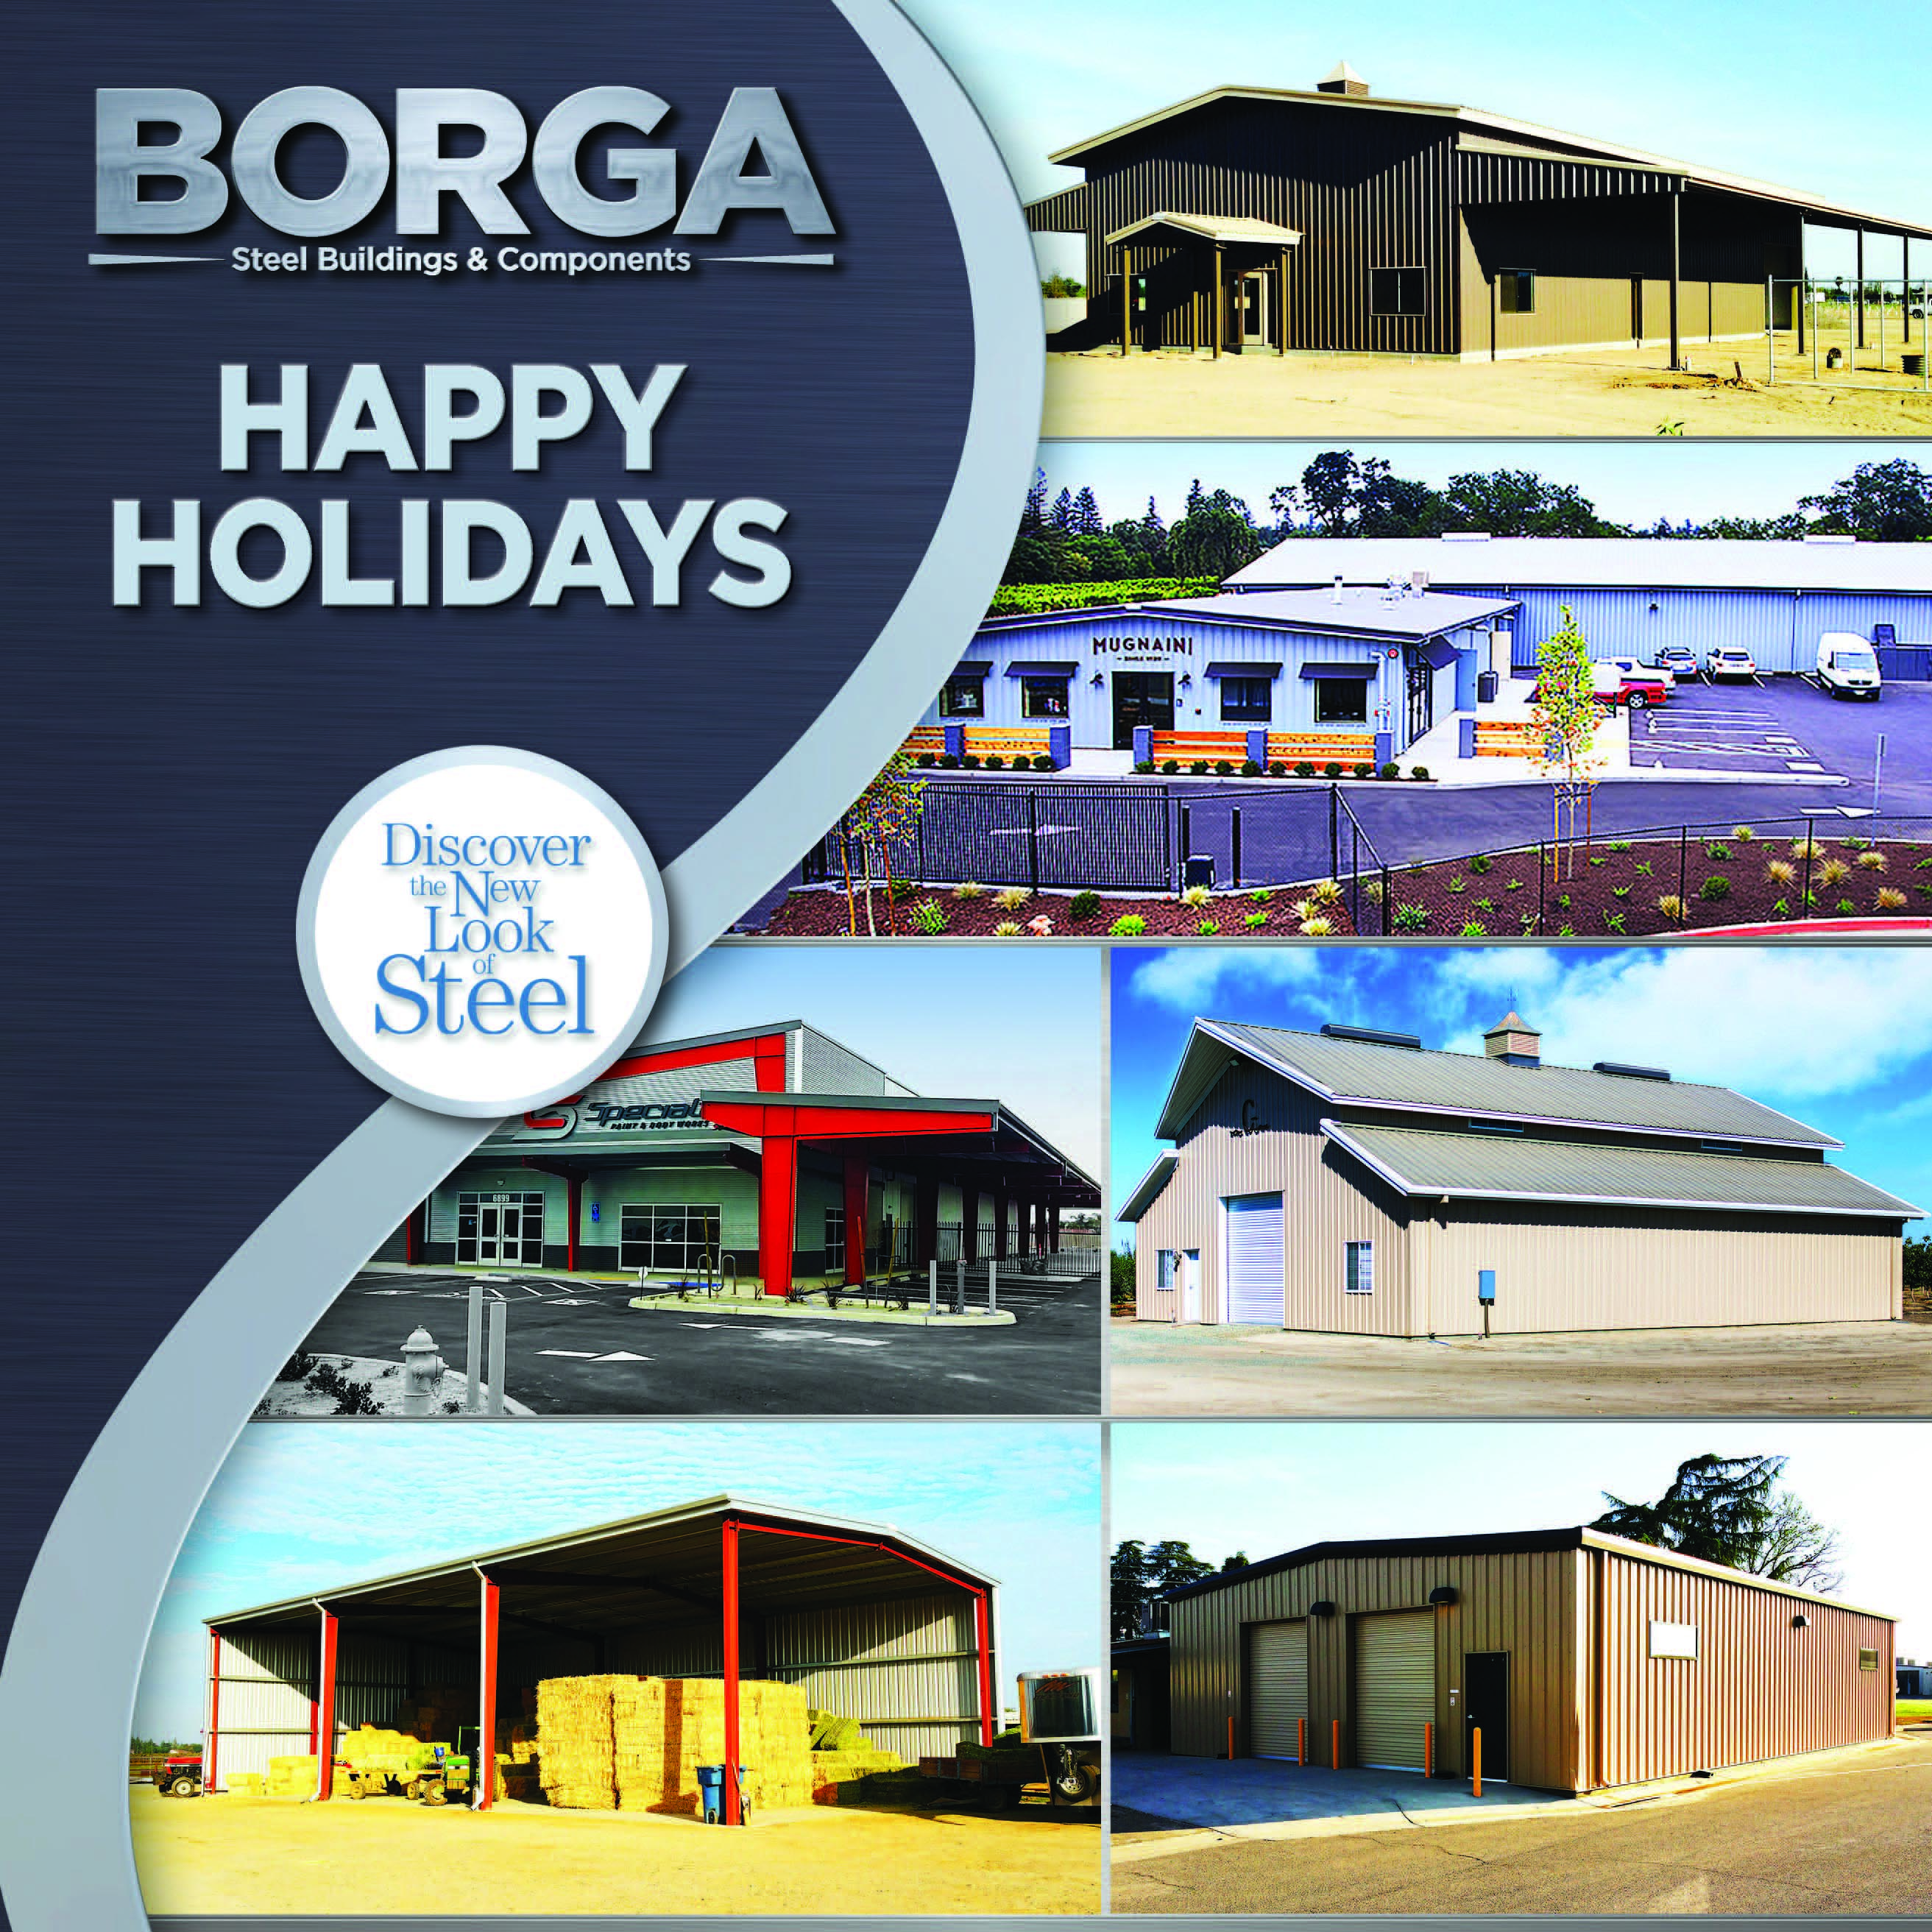 Borga steel buildings and components fresno california fowler metal building happy holidays blue texture central valley